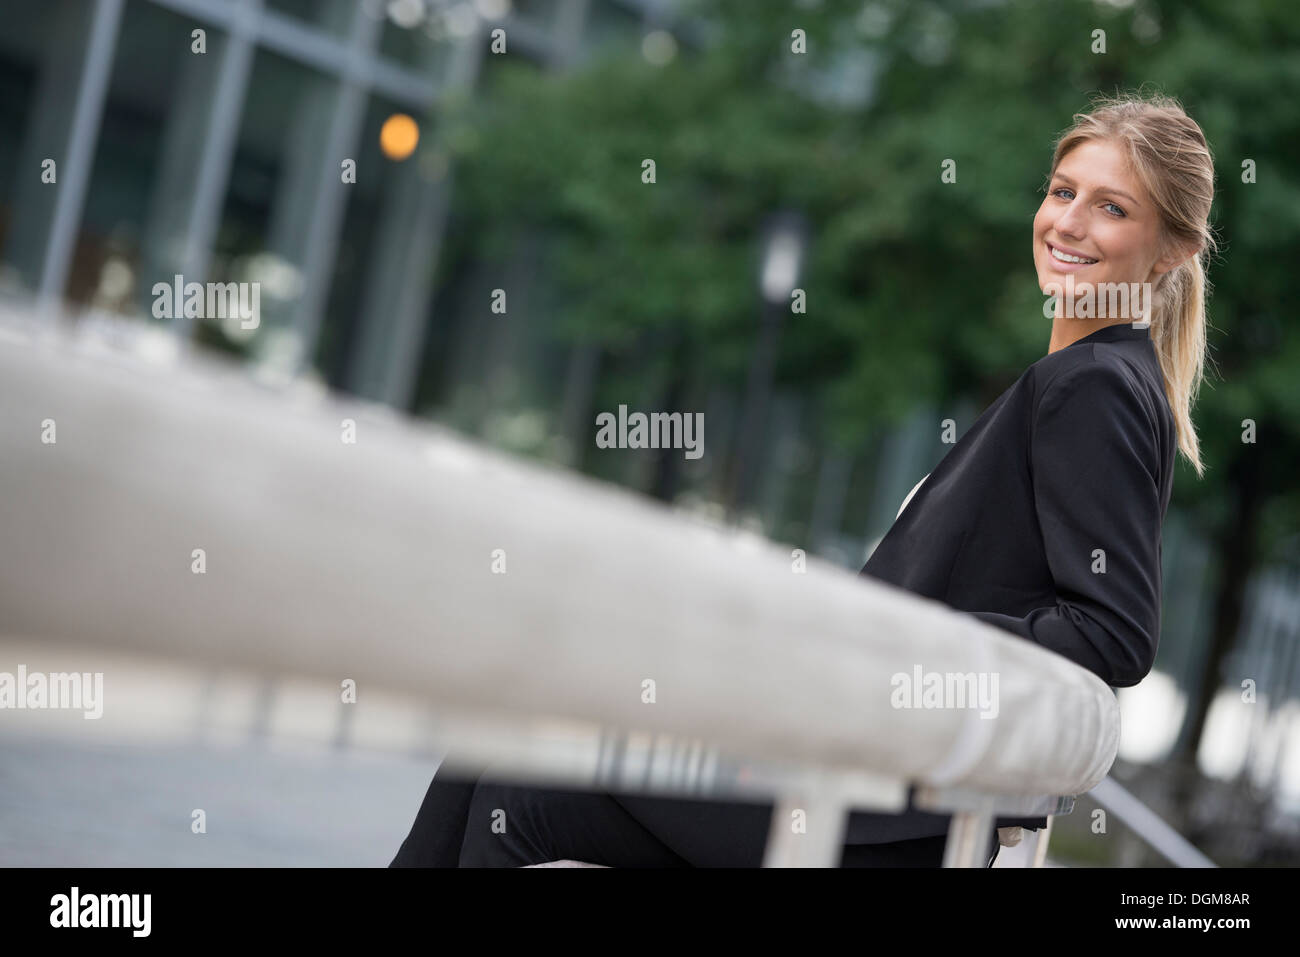 A young blonde woman on a New York city street. Wearing a black jacket. Stock Photo